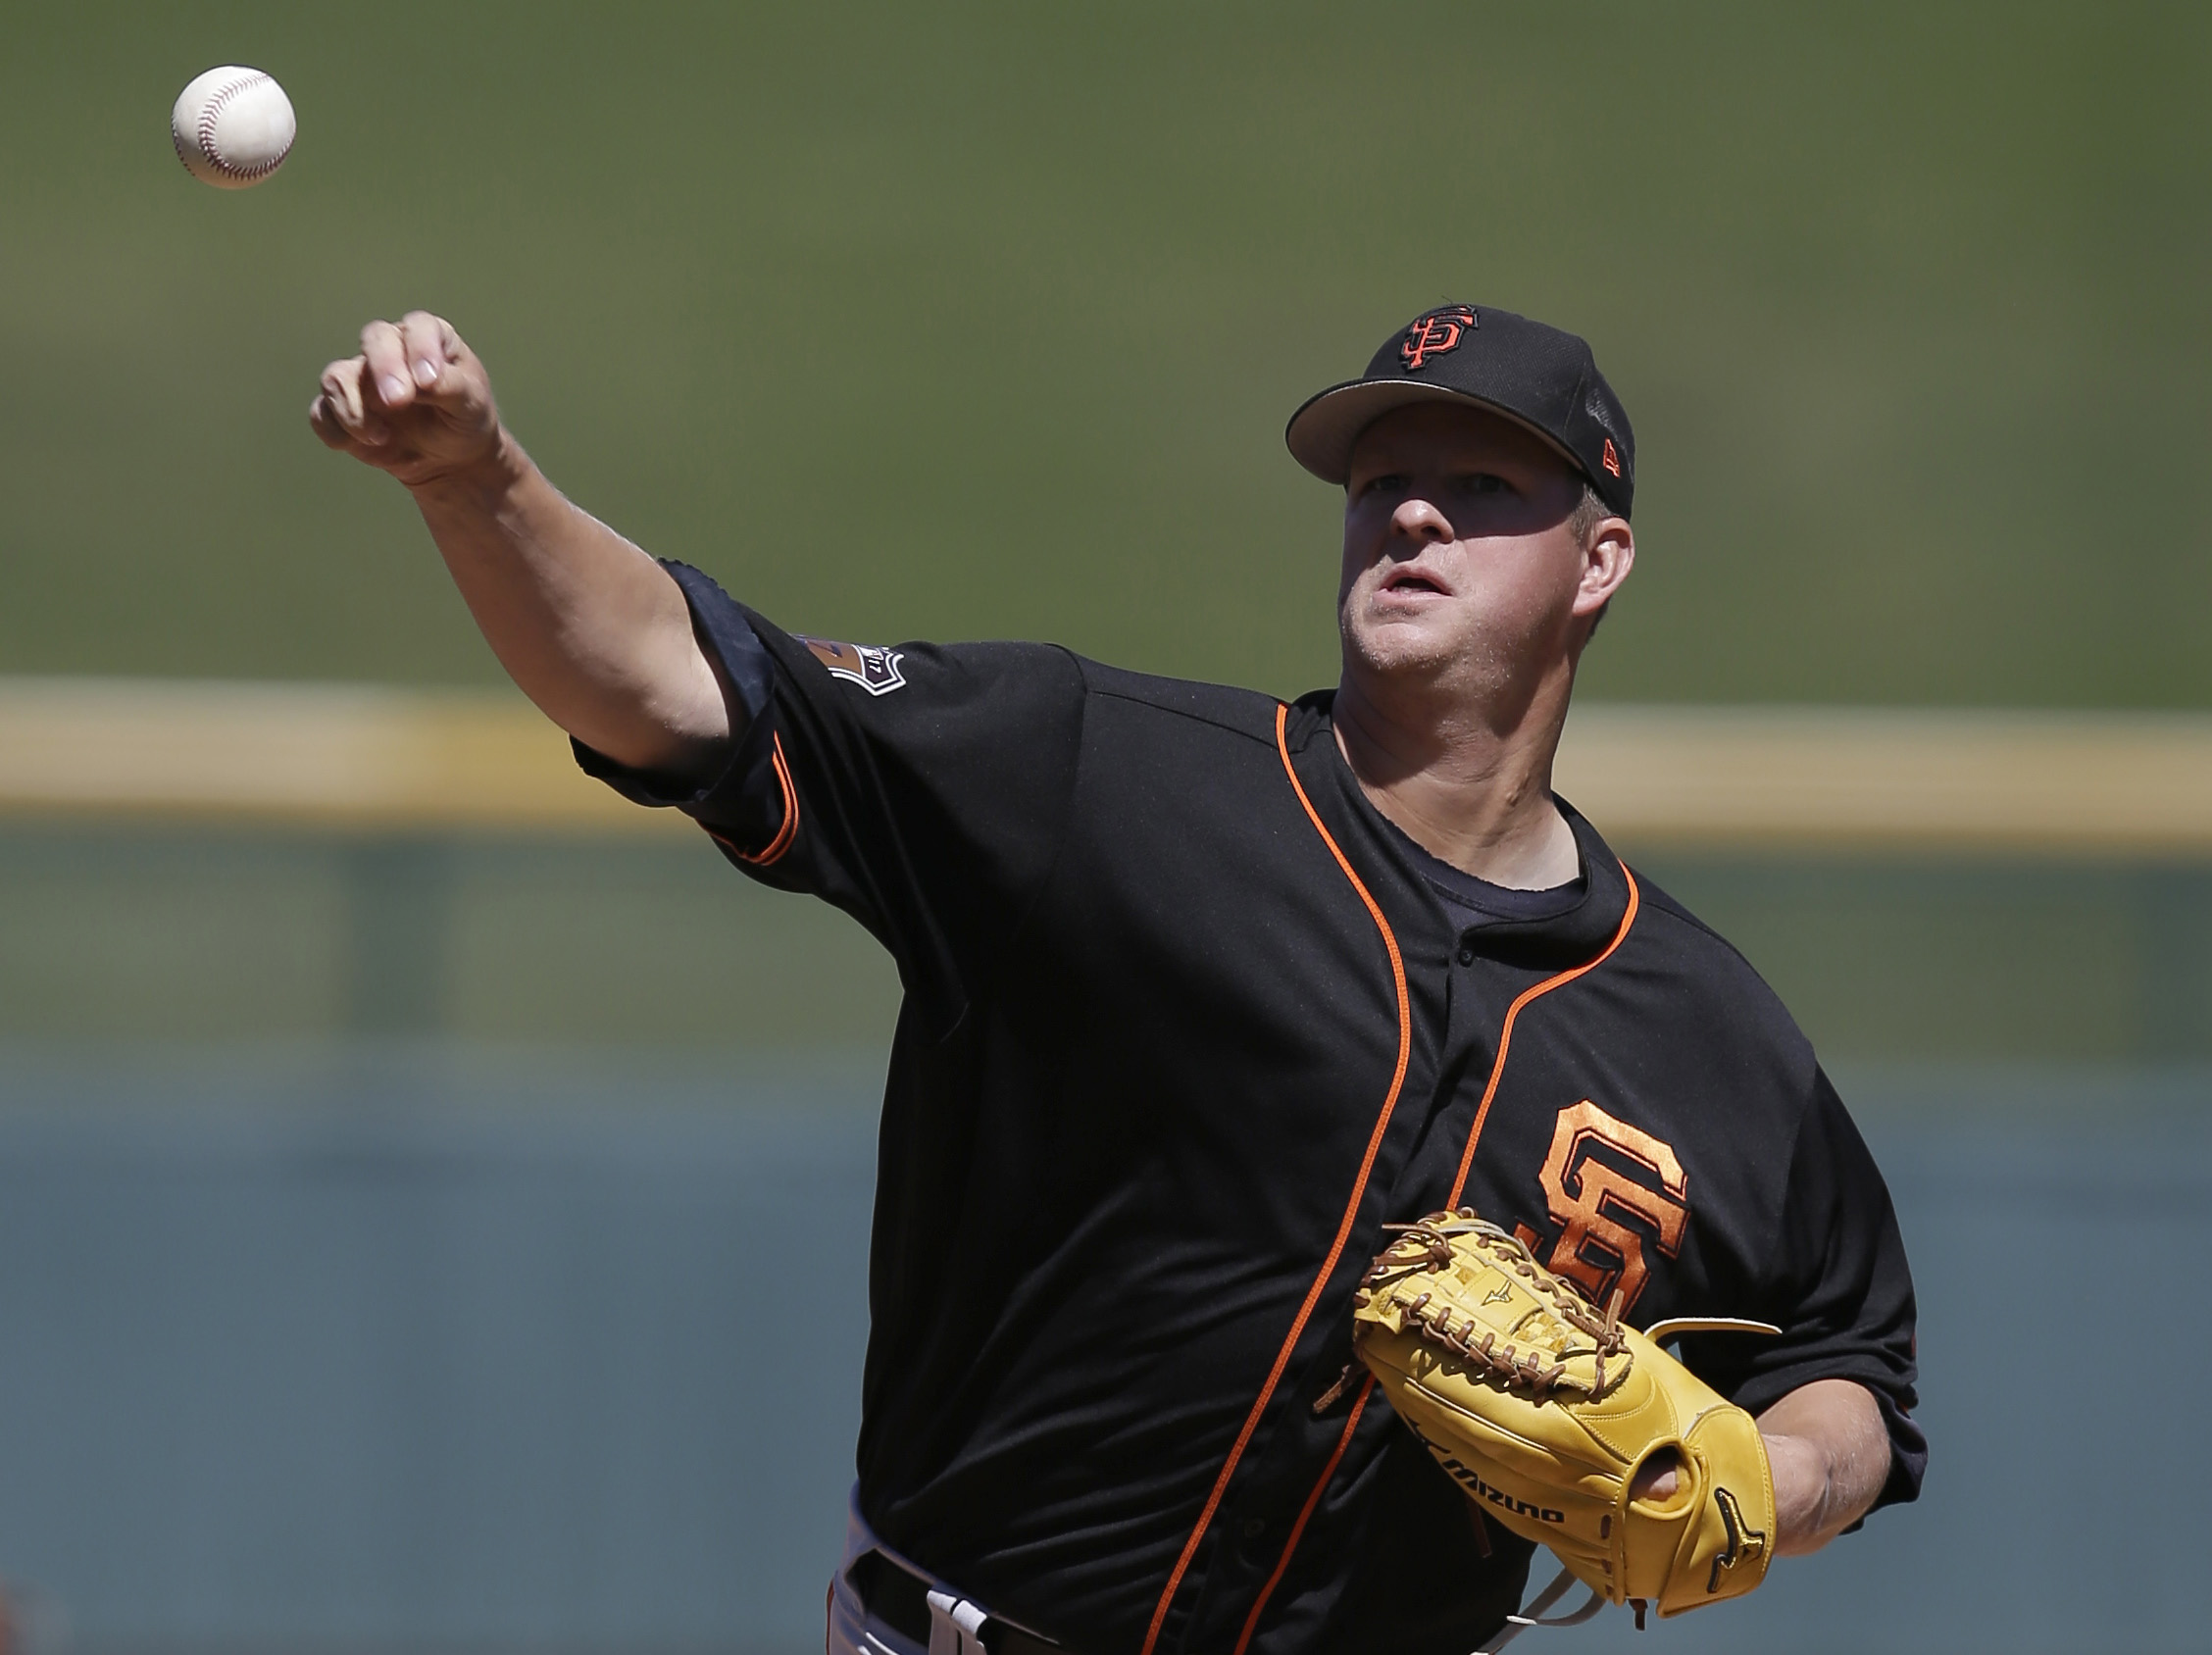 9977840-mlb-spring-training-san-francisco-giants-at-chicago-cubs